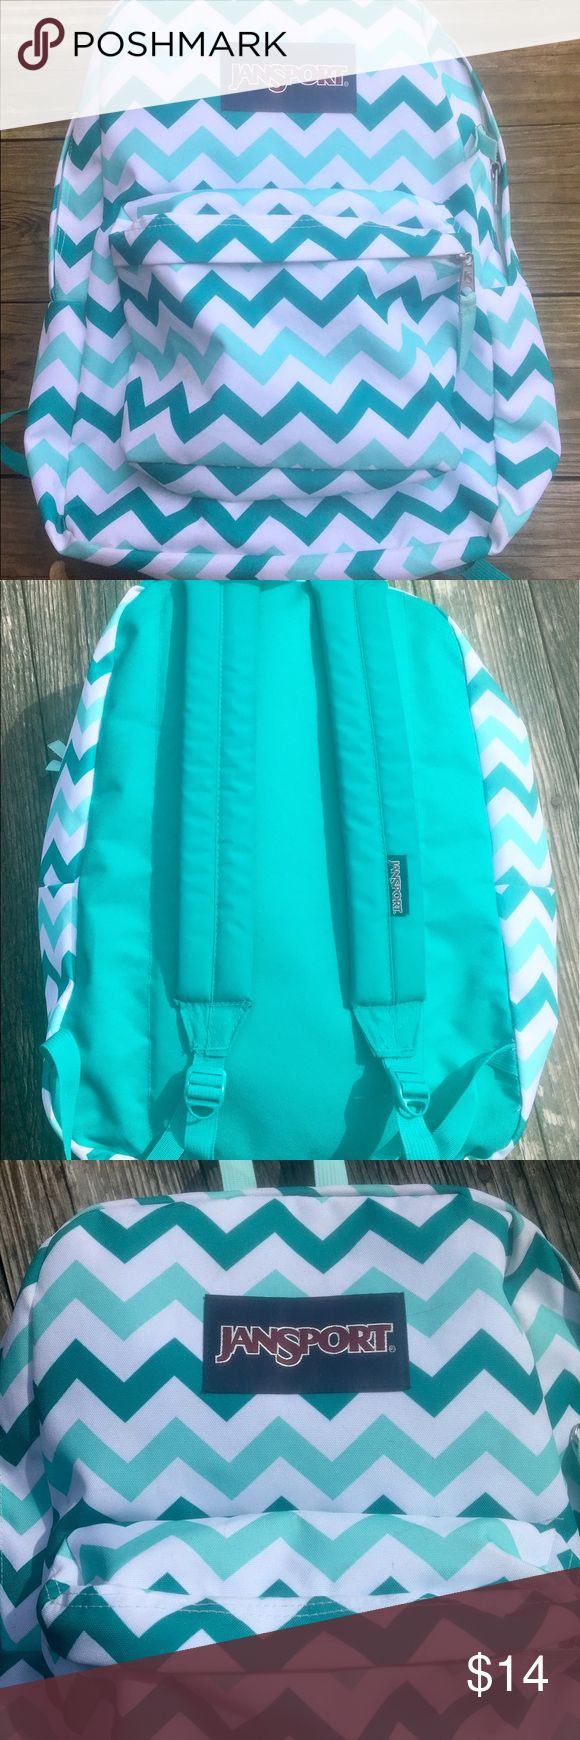 JANSPORT backpack JANSPORT  backpack. Green chevron pattern. Outside zippered pocket. Good condition, some pen and pencil marks, just throw in washing machine. See pictures. Jansport Bags Backpacks